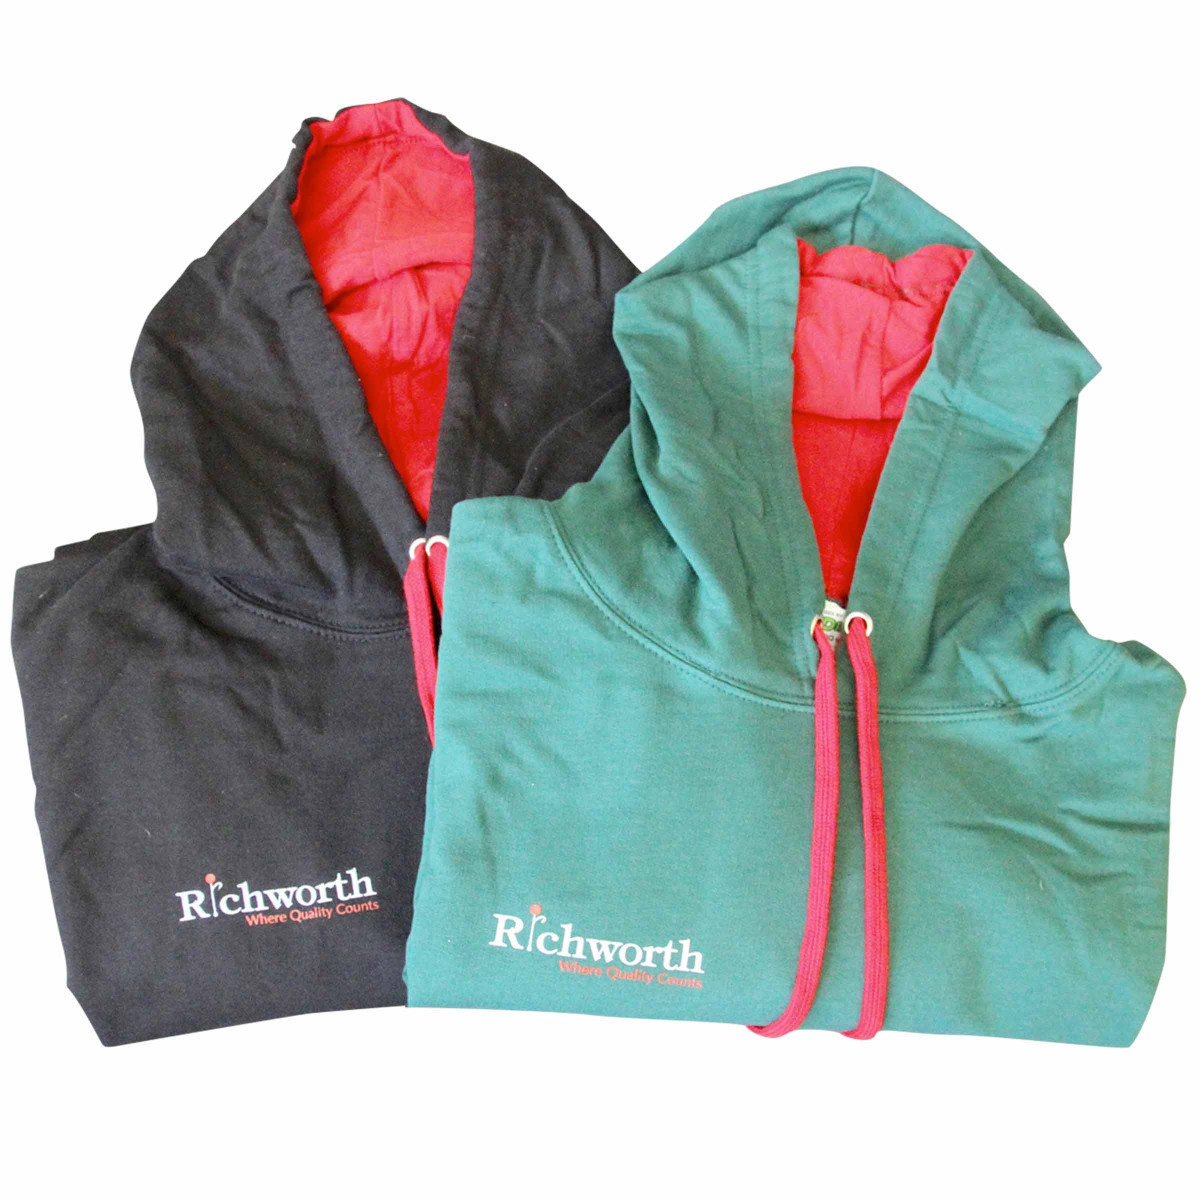 Richworth Hoodies